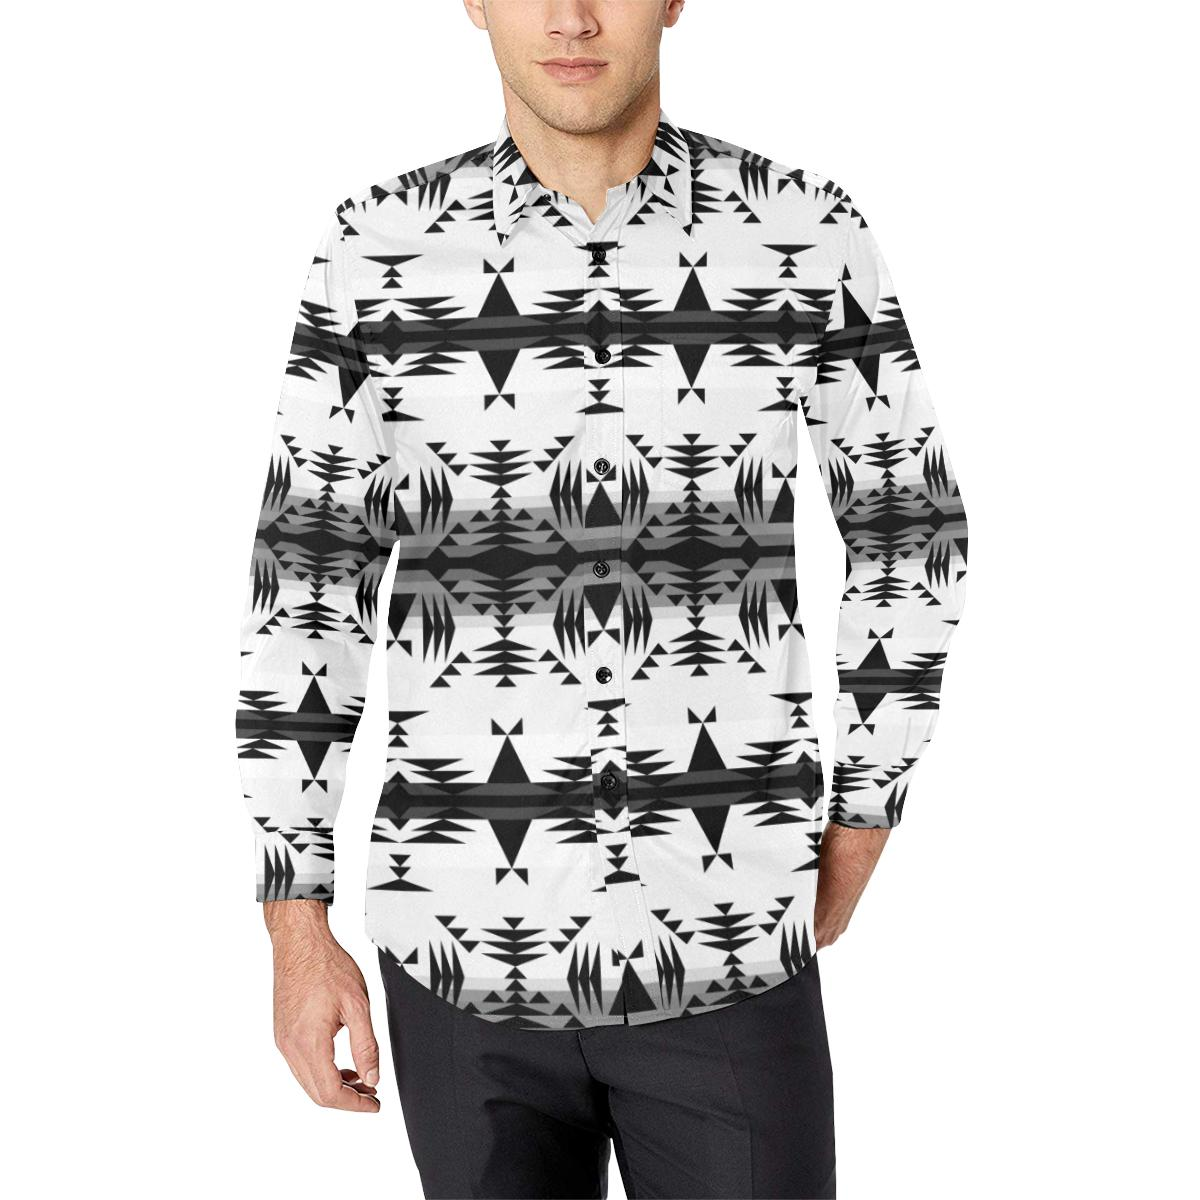 Between the Mountains White and Black Men's All Over Print Casual Dress Shirt (Model T61) Men's Dress Shirt (T61) e-joyer